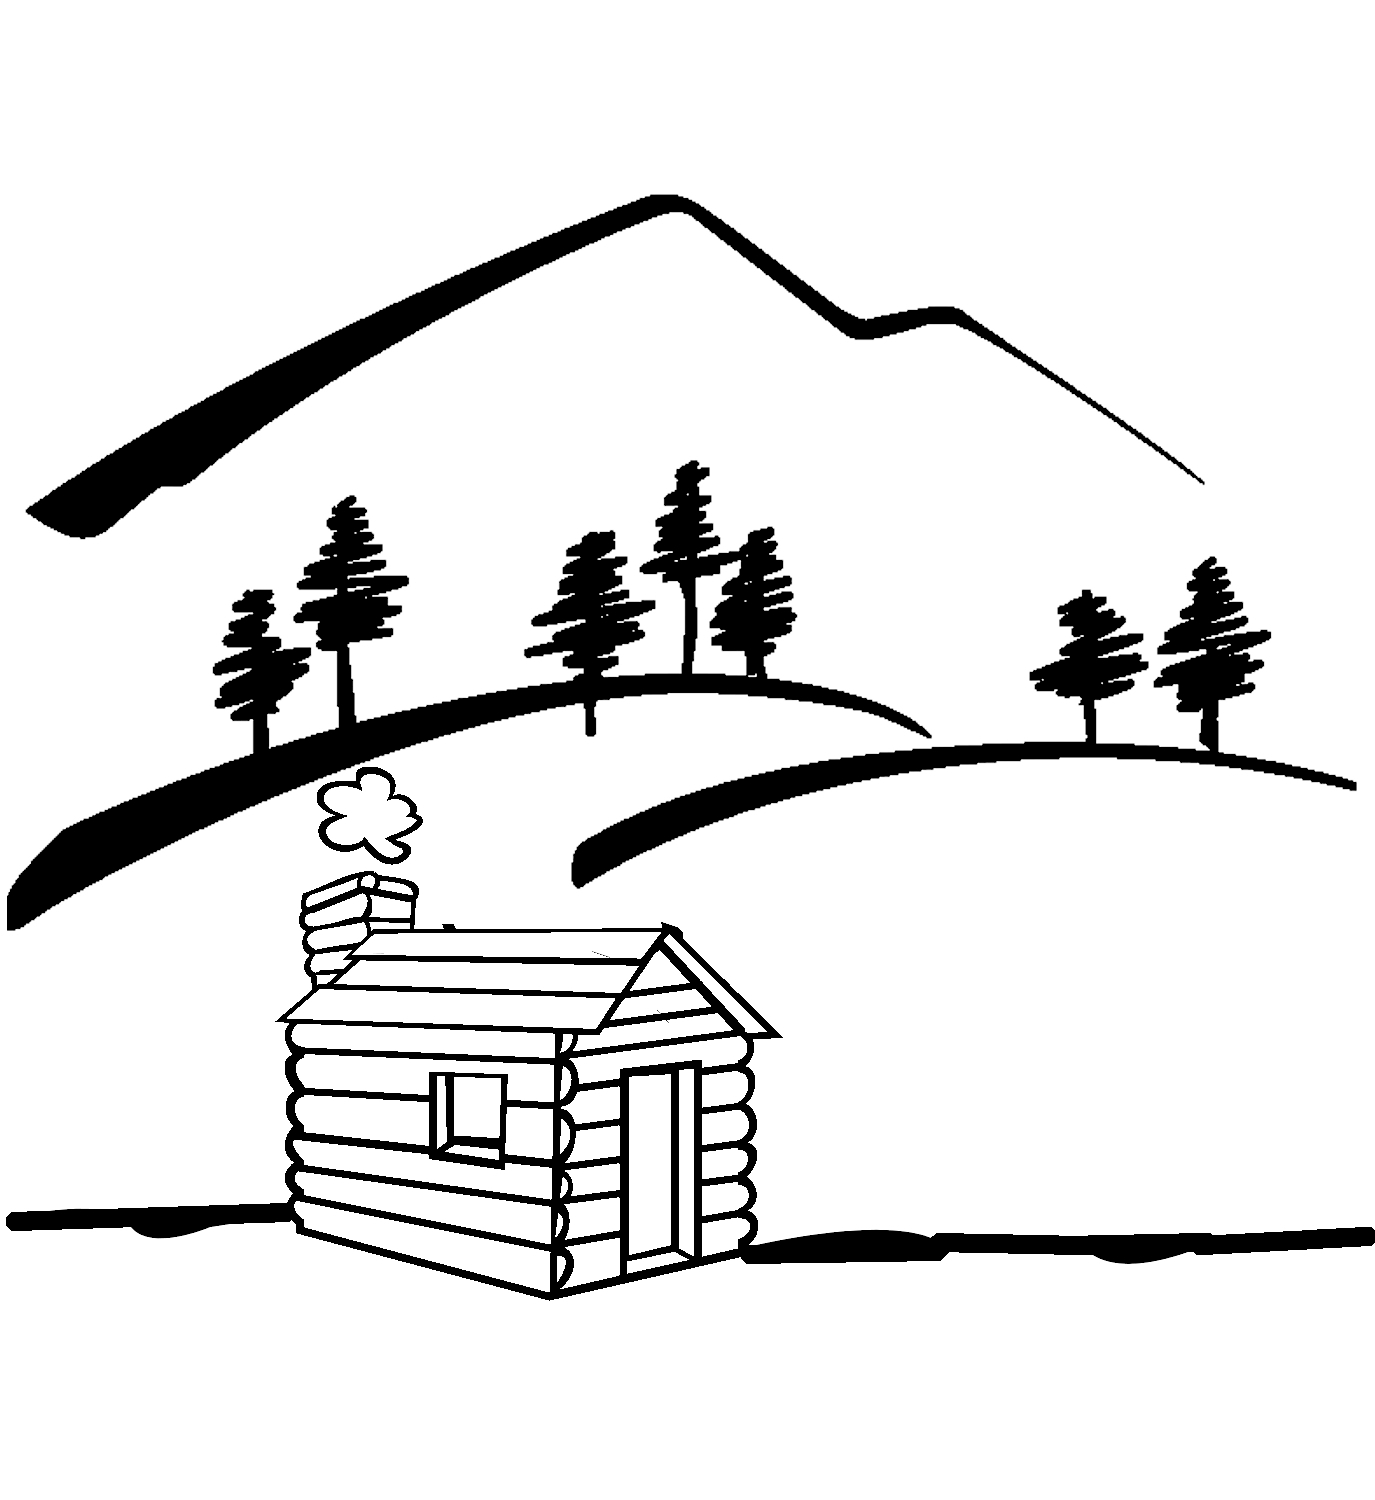 Cartoon mountain lake and tree clipart black and white clip art royalty free Free Black And White River Clipart, Download Free Clip Art ... clip art royalty free